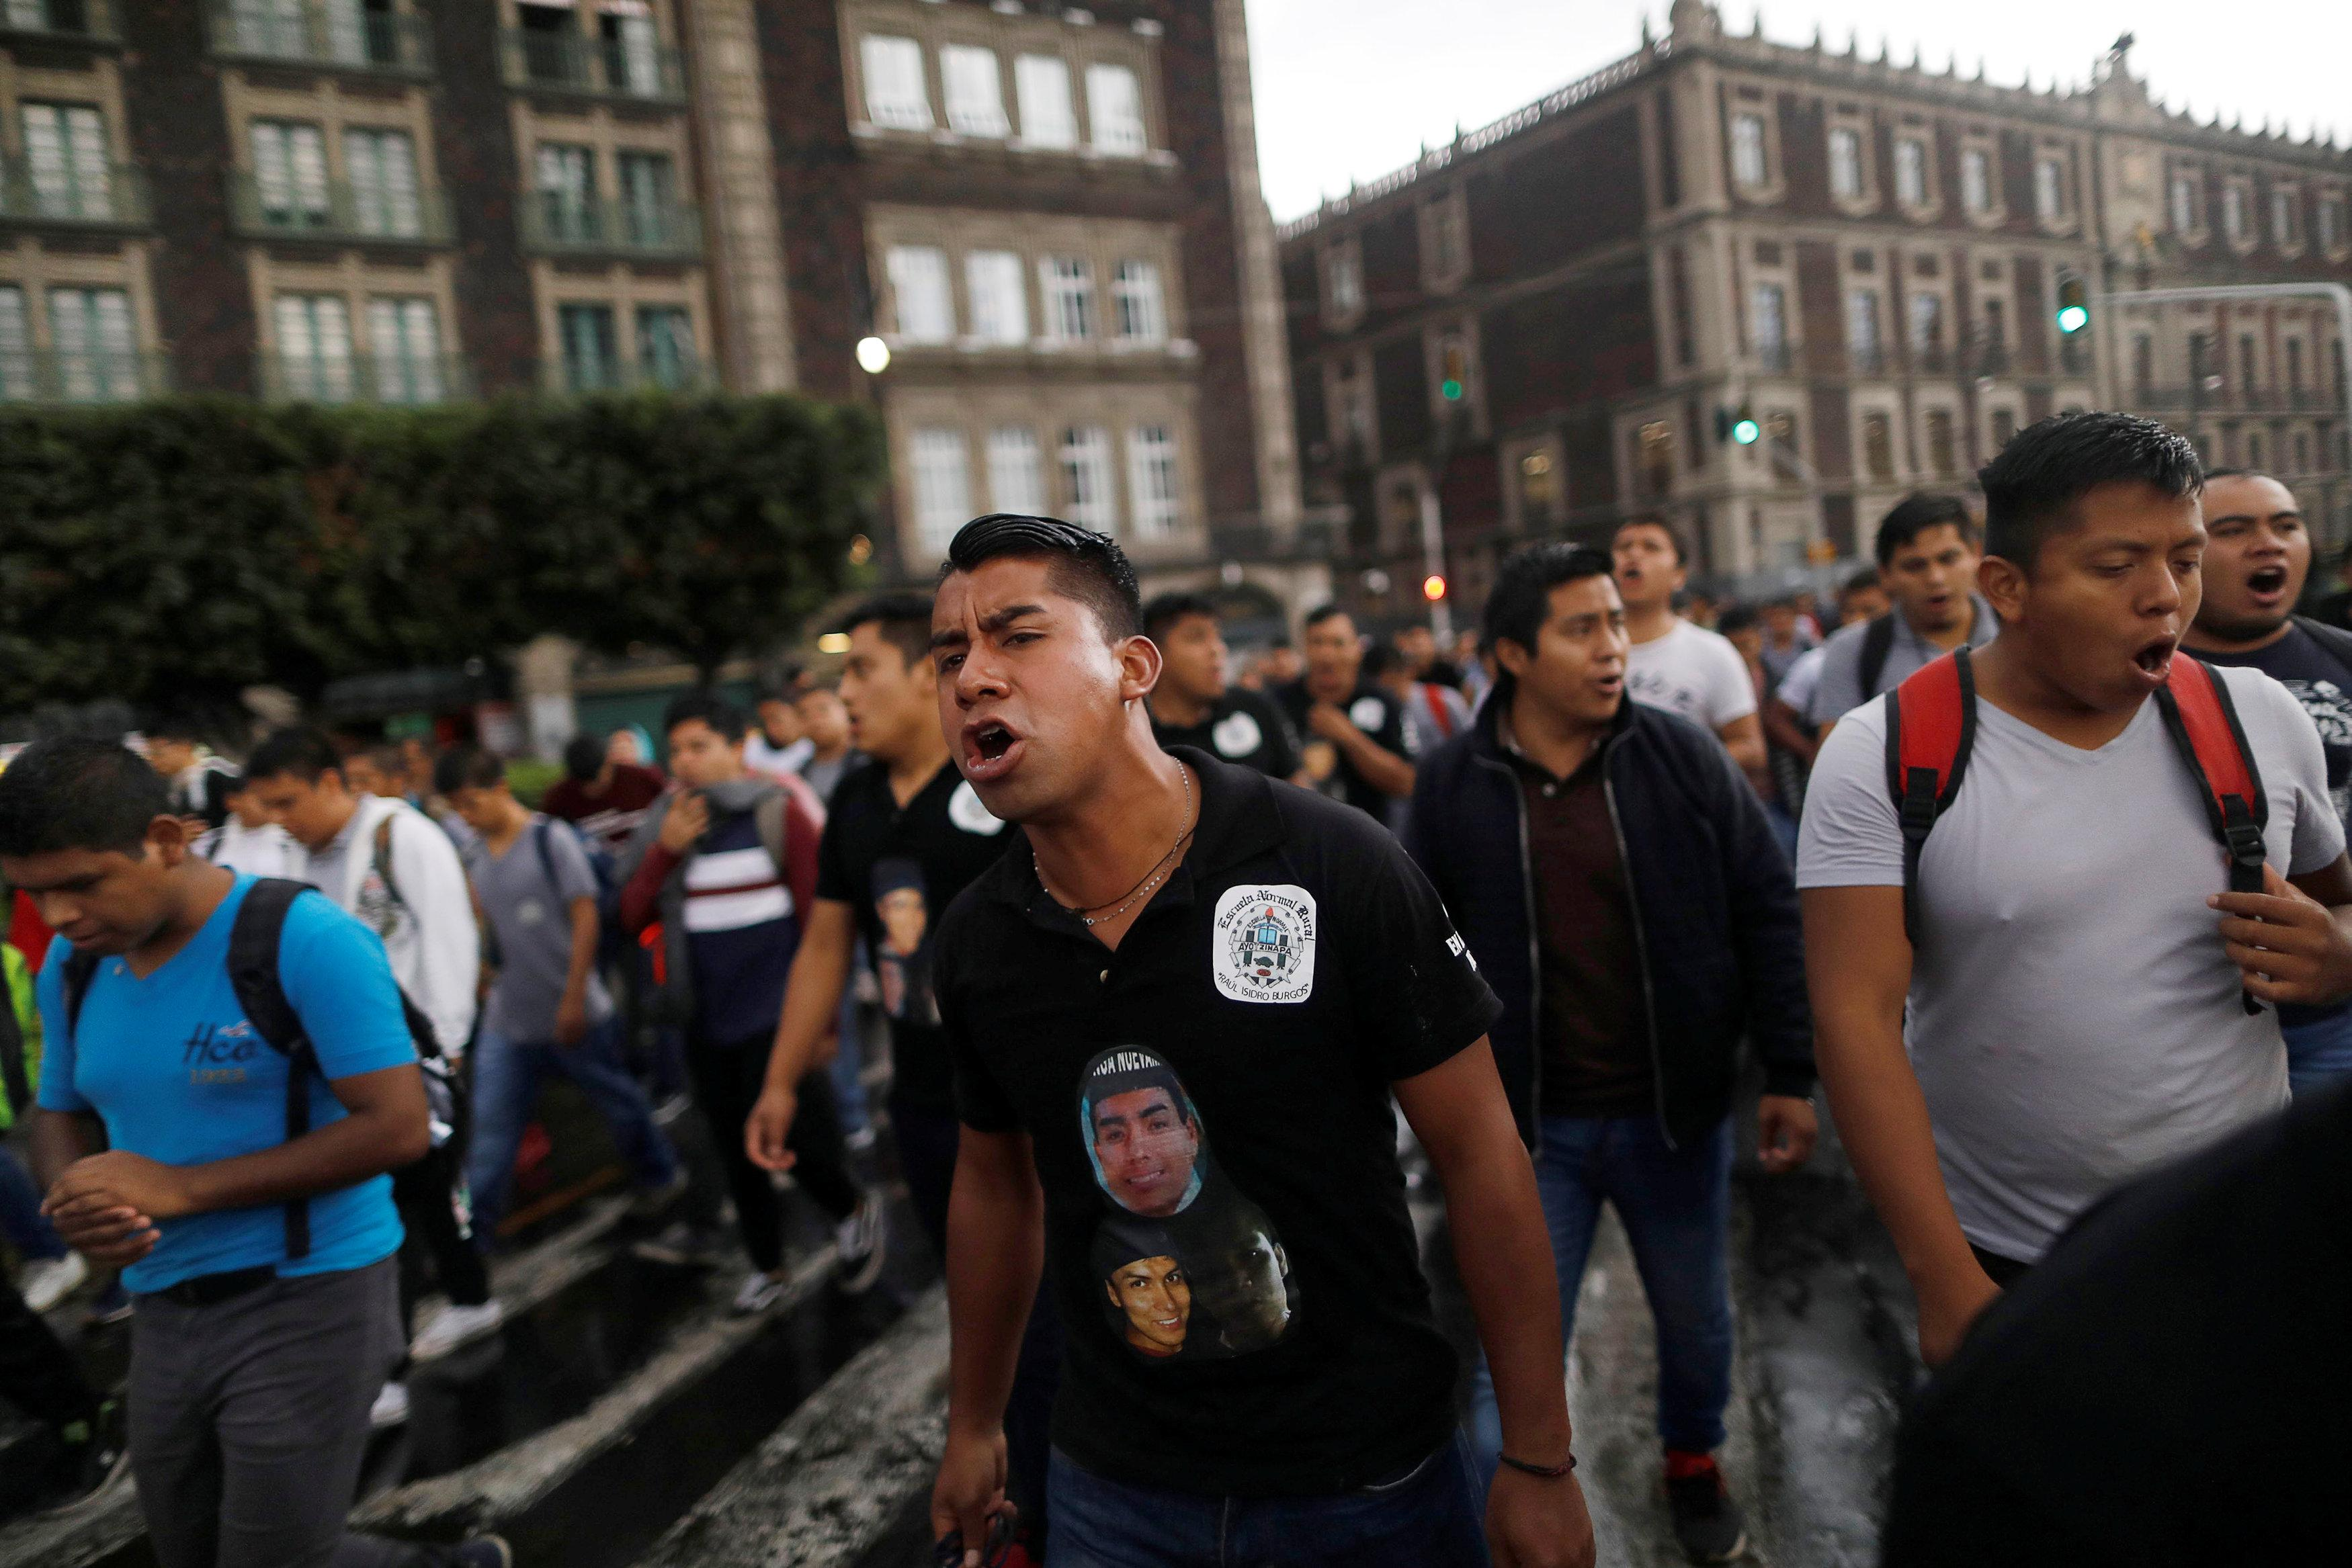 A demonstrator yells during a march to mark the fourth year since the disappearance of the 43 students of training college Raul Isidro Burgos in the state of Guerrero, in Mexico City, Mexico September 26, 2018. Edgard Garrido